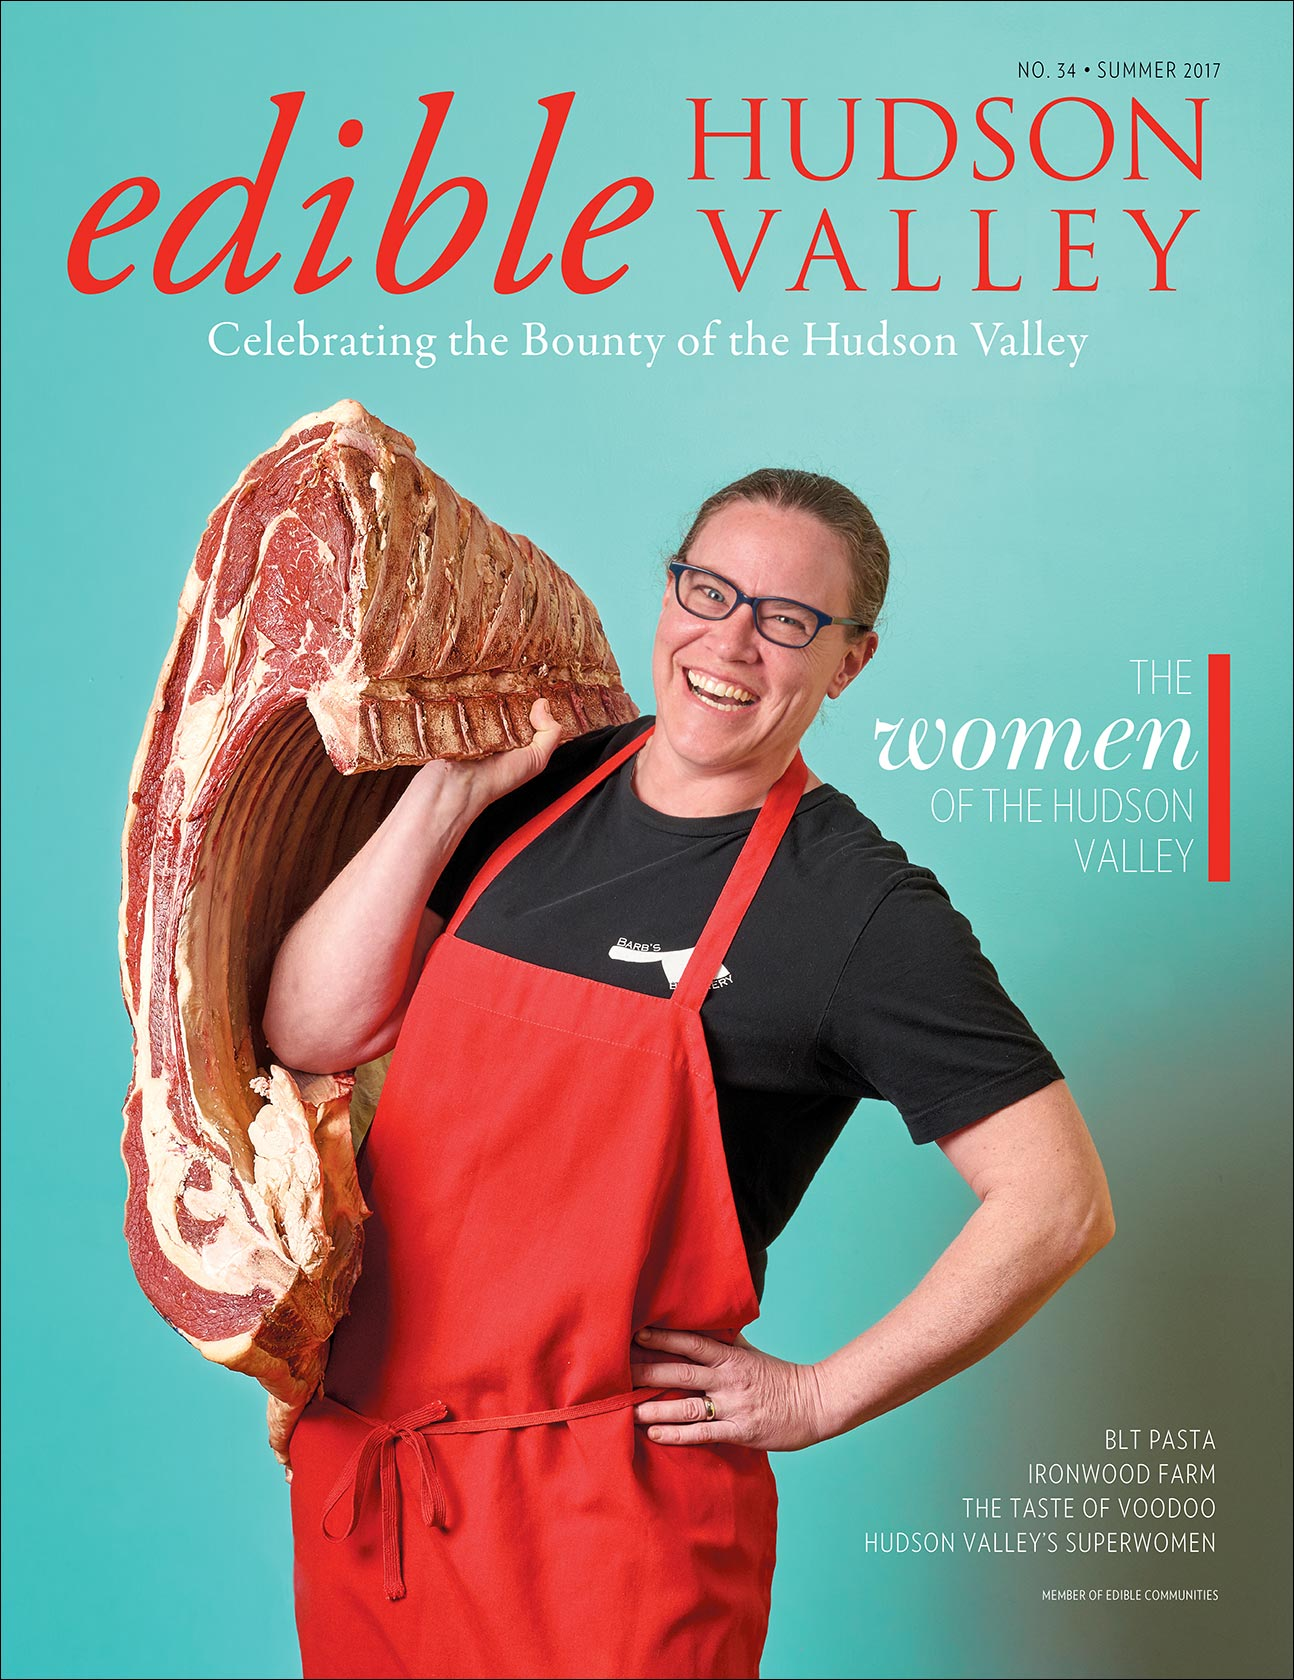 Jennifer-May-Edible-Hudson-Valley-2017-Cover-2